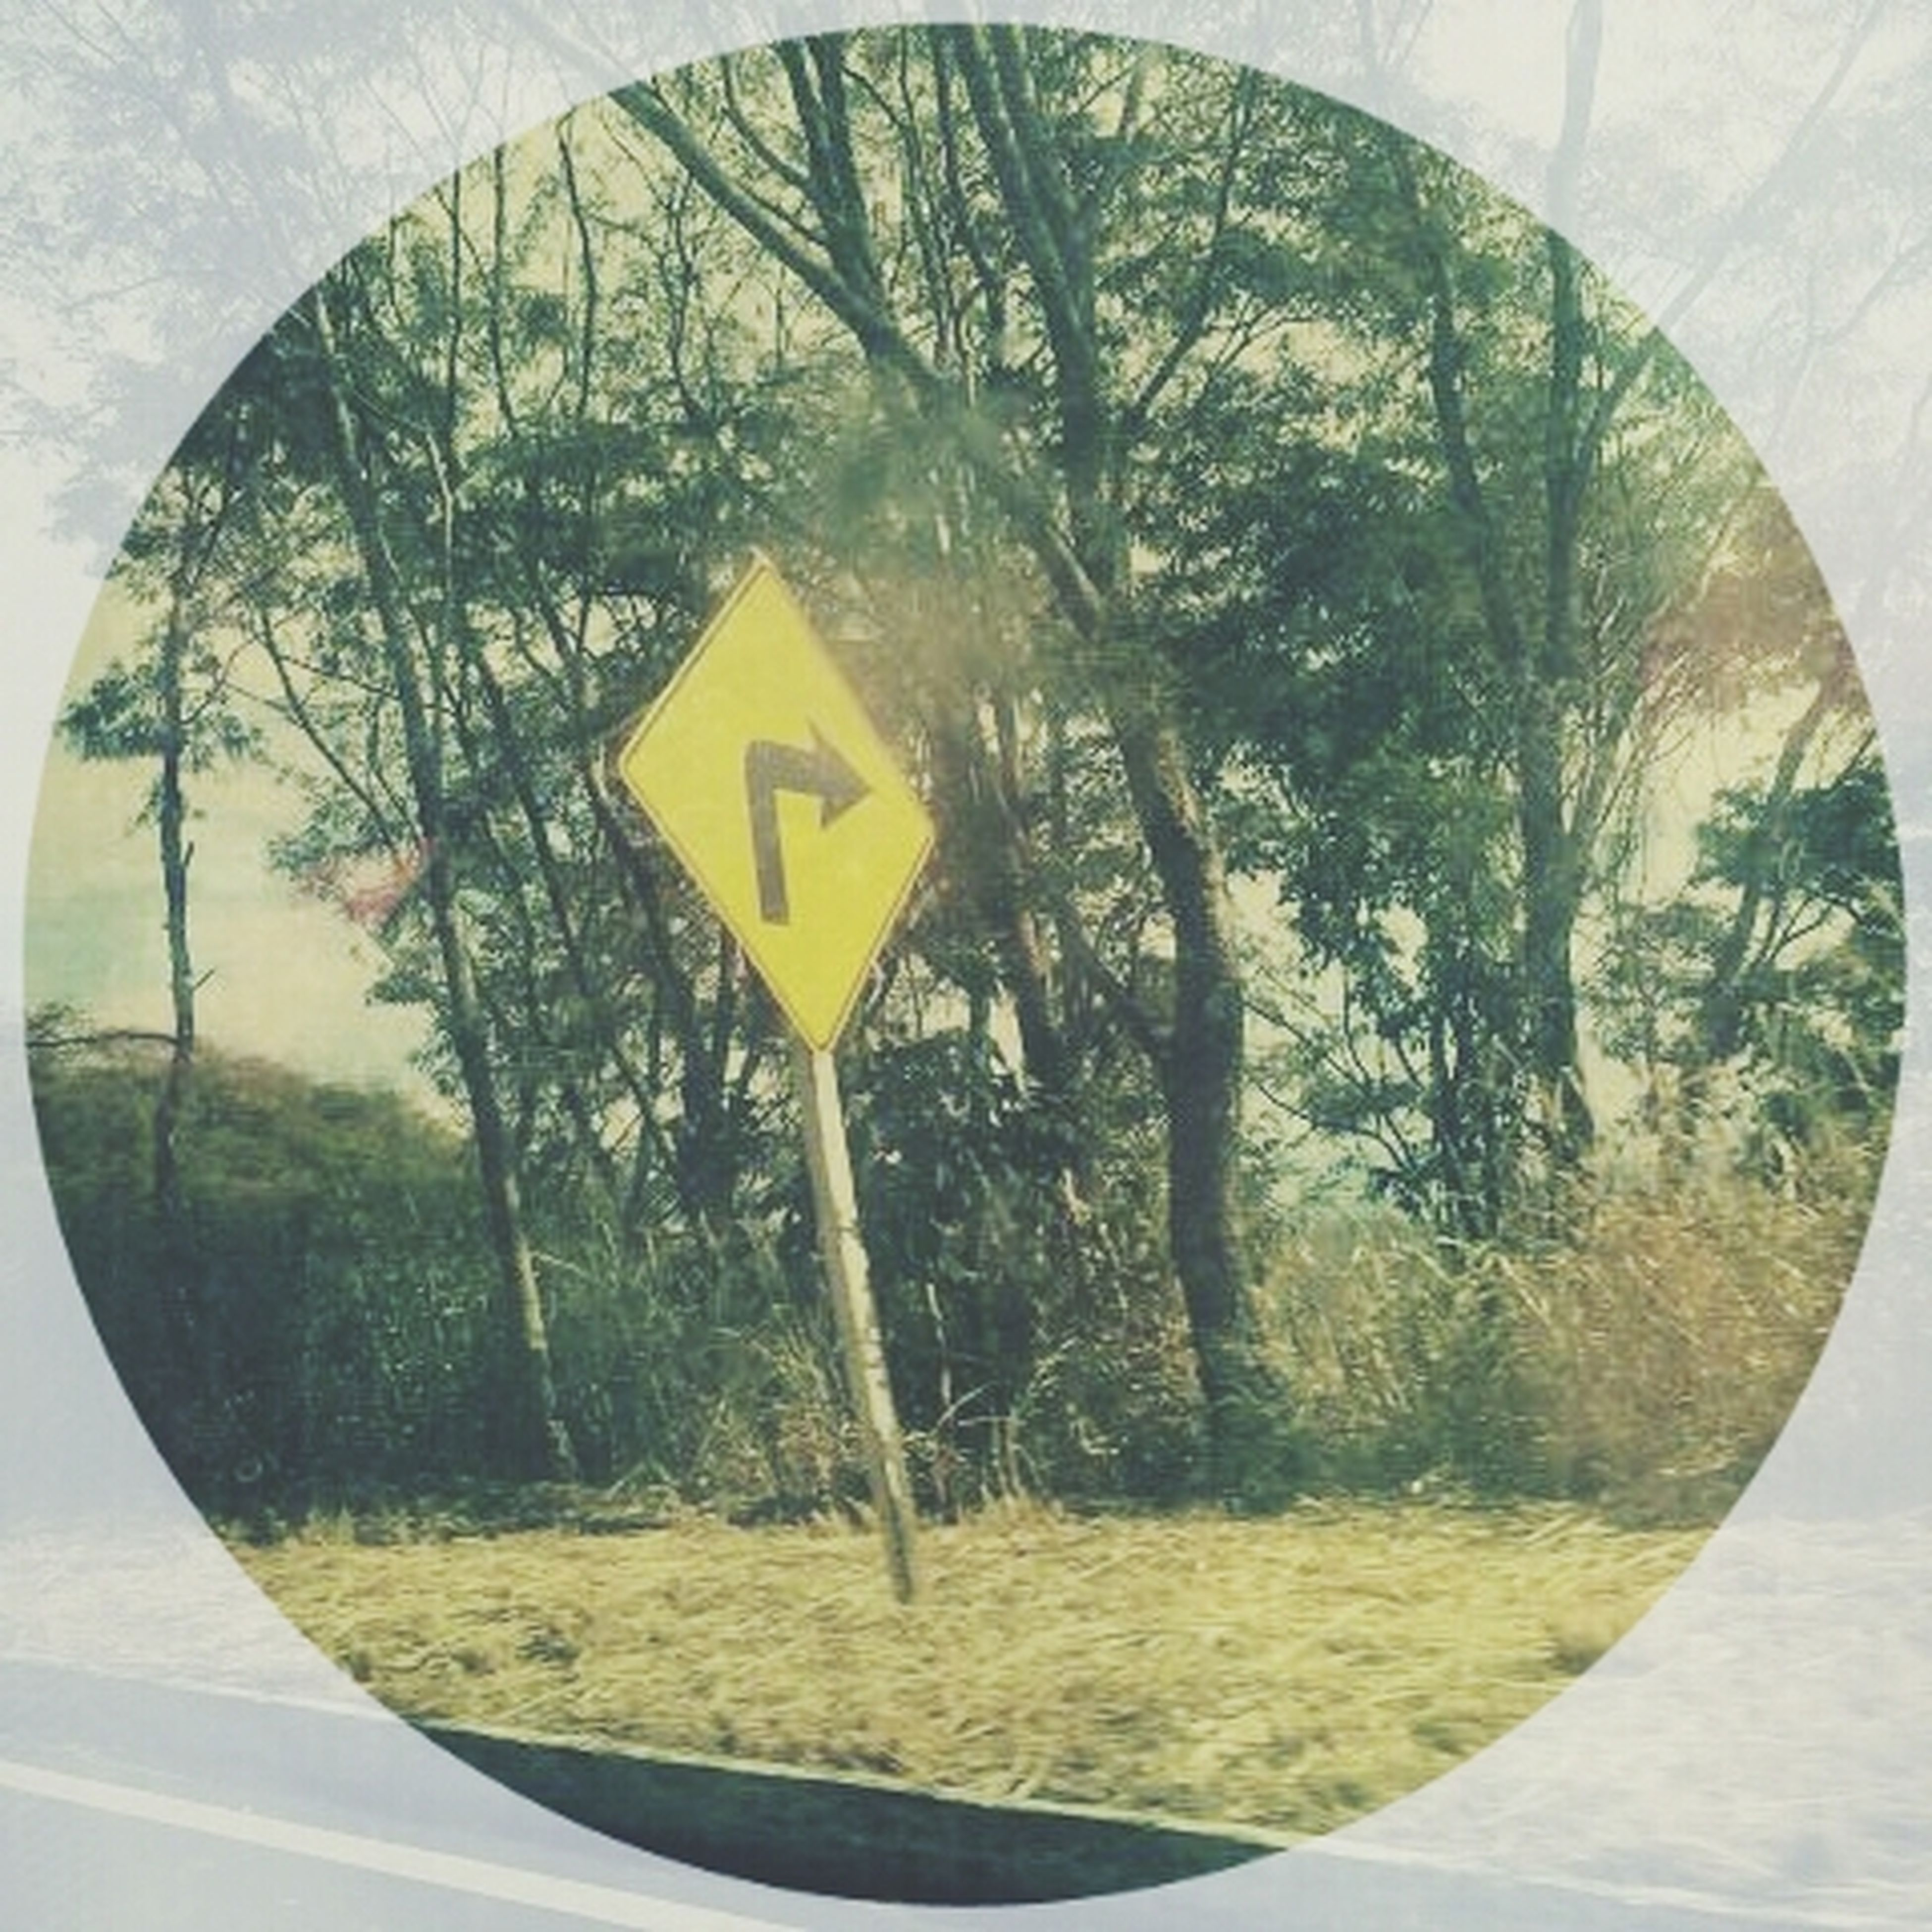 tree, circle, grass, geometric shape, communication, text, day, transportation, yellow, green color, field, no people, nature, close-up, growth, outdoors, round, western script, road sign, glass - material